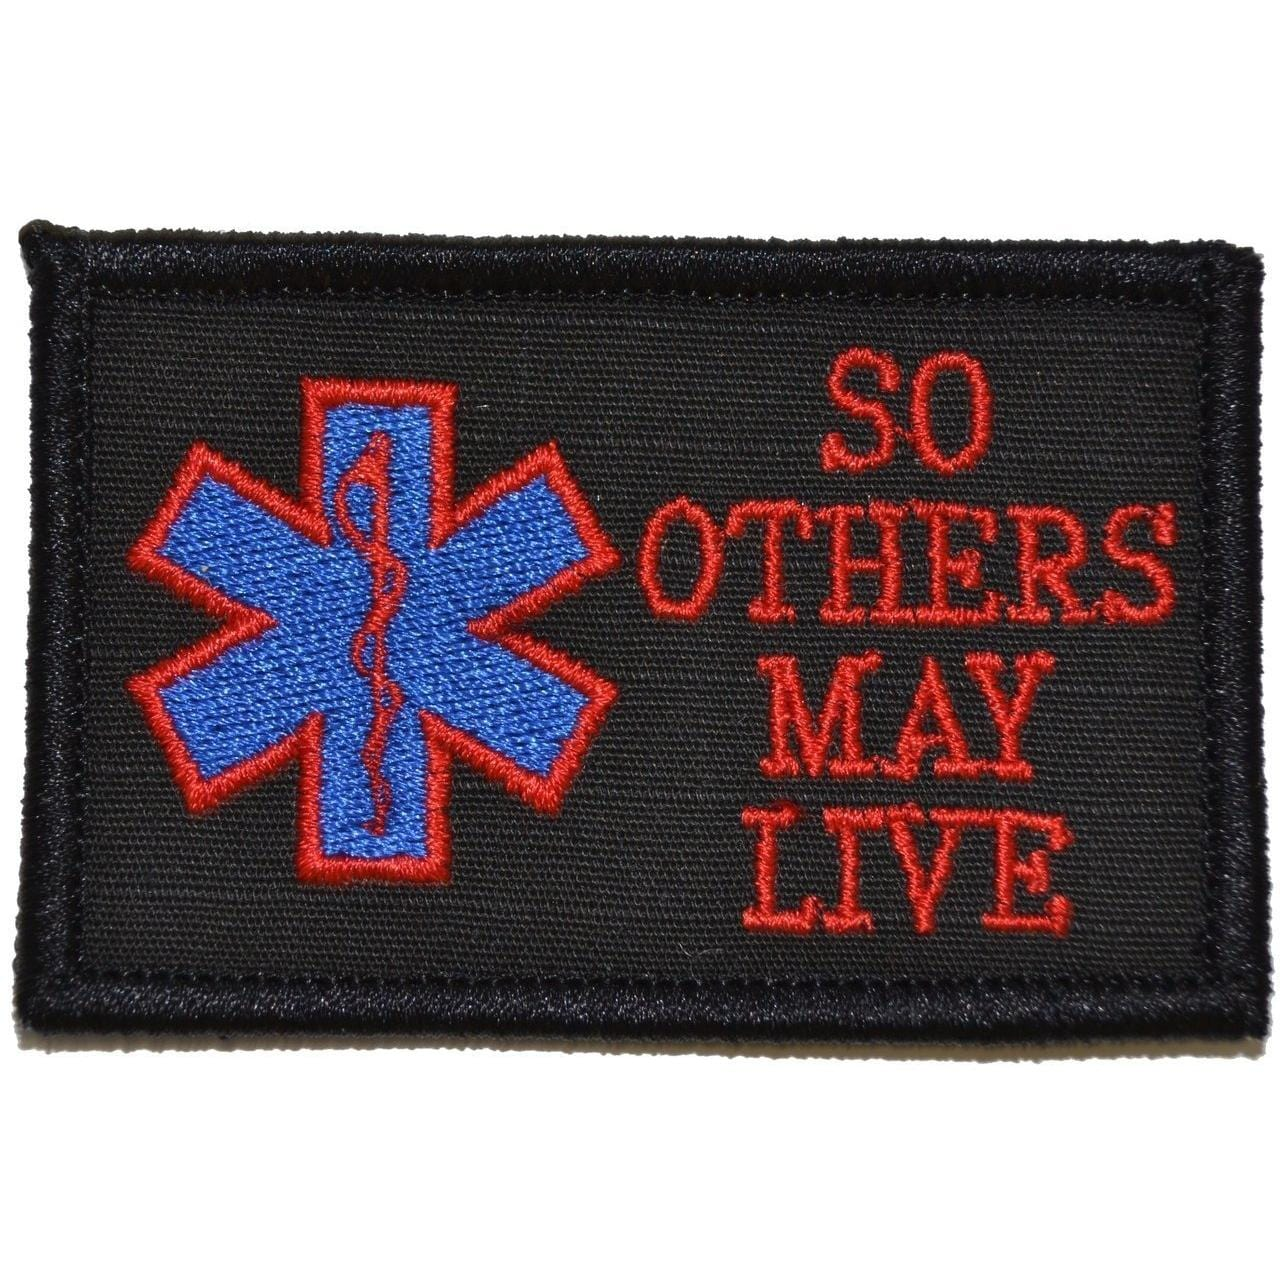 Tactical Gear Junkie Patches Black w/ Red EMS So Others May Live - 2x3 Patch